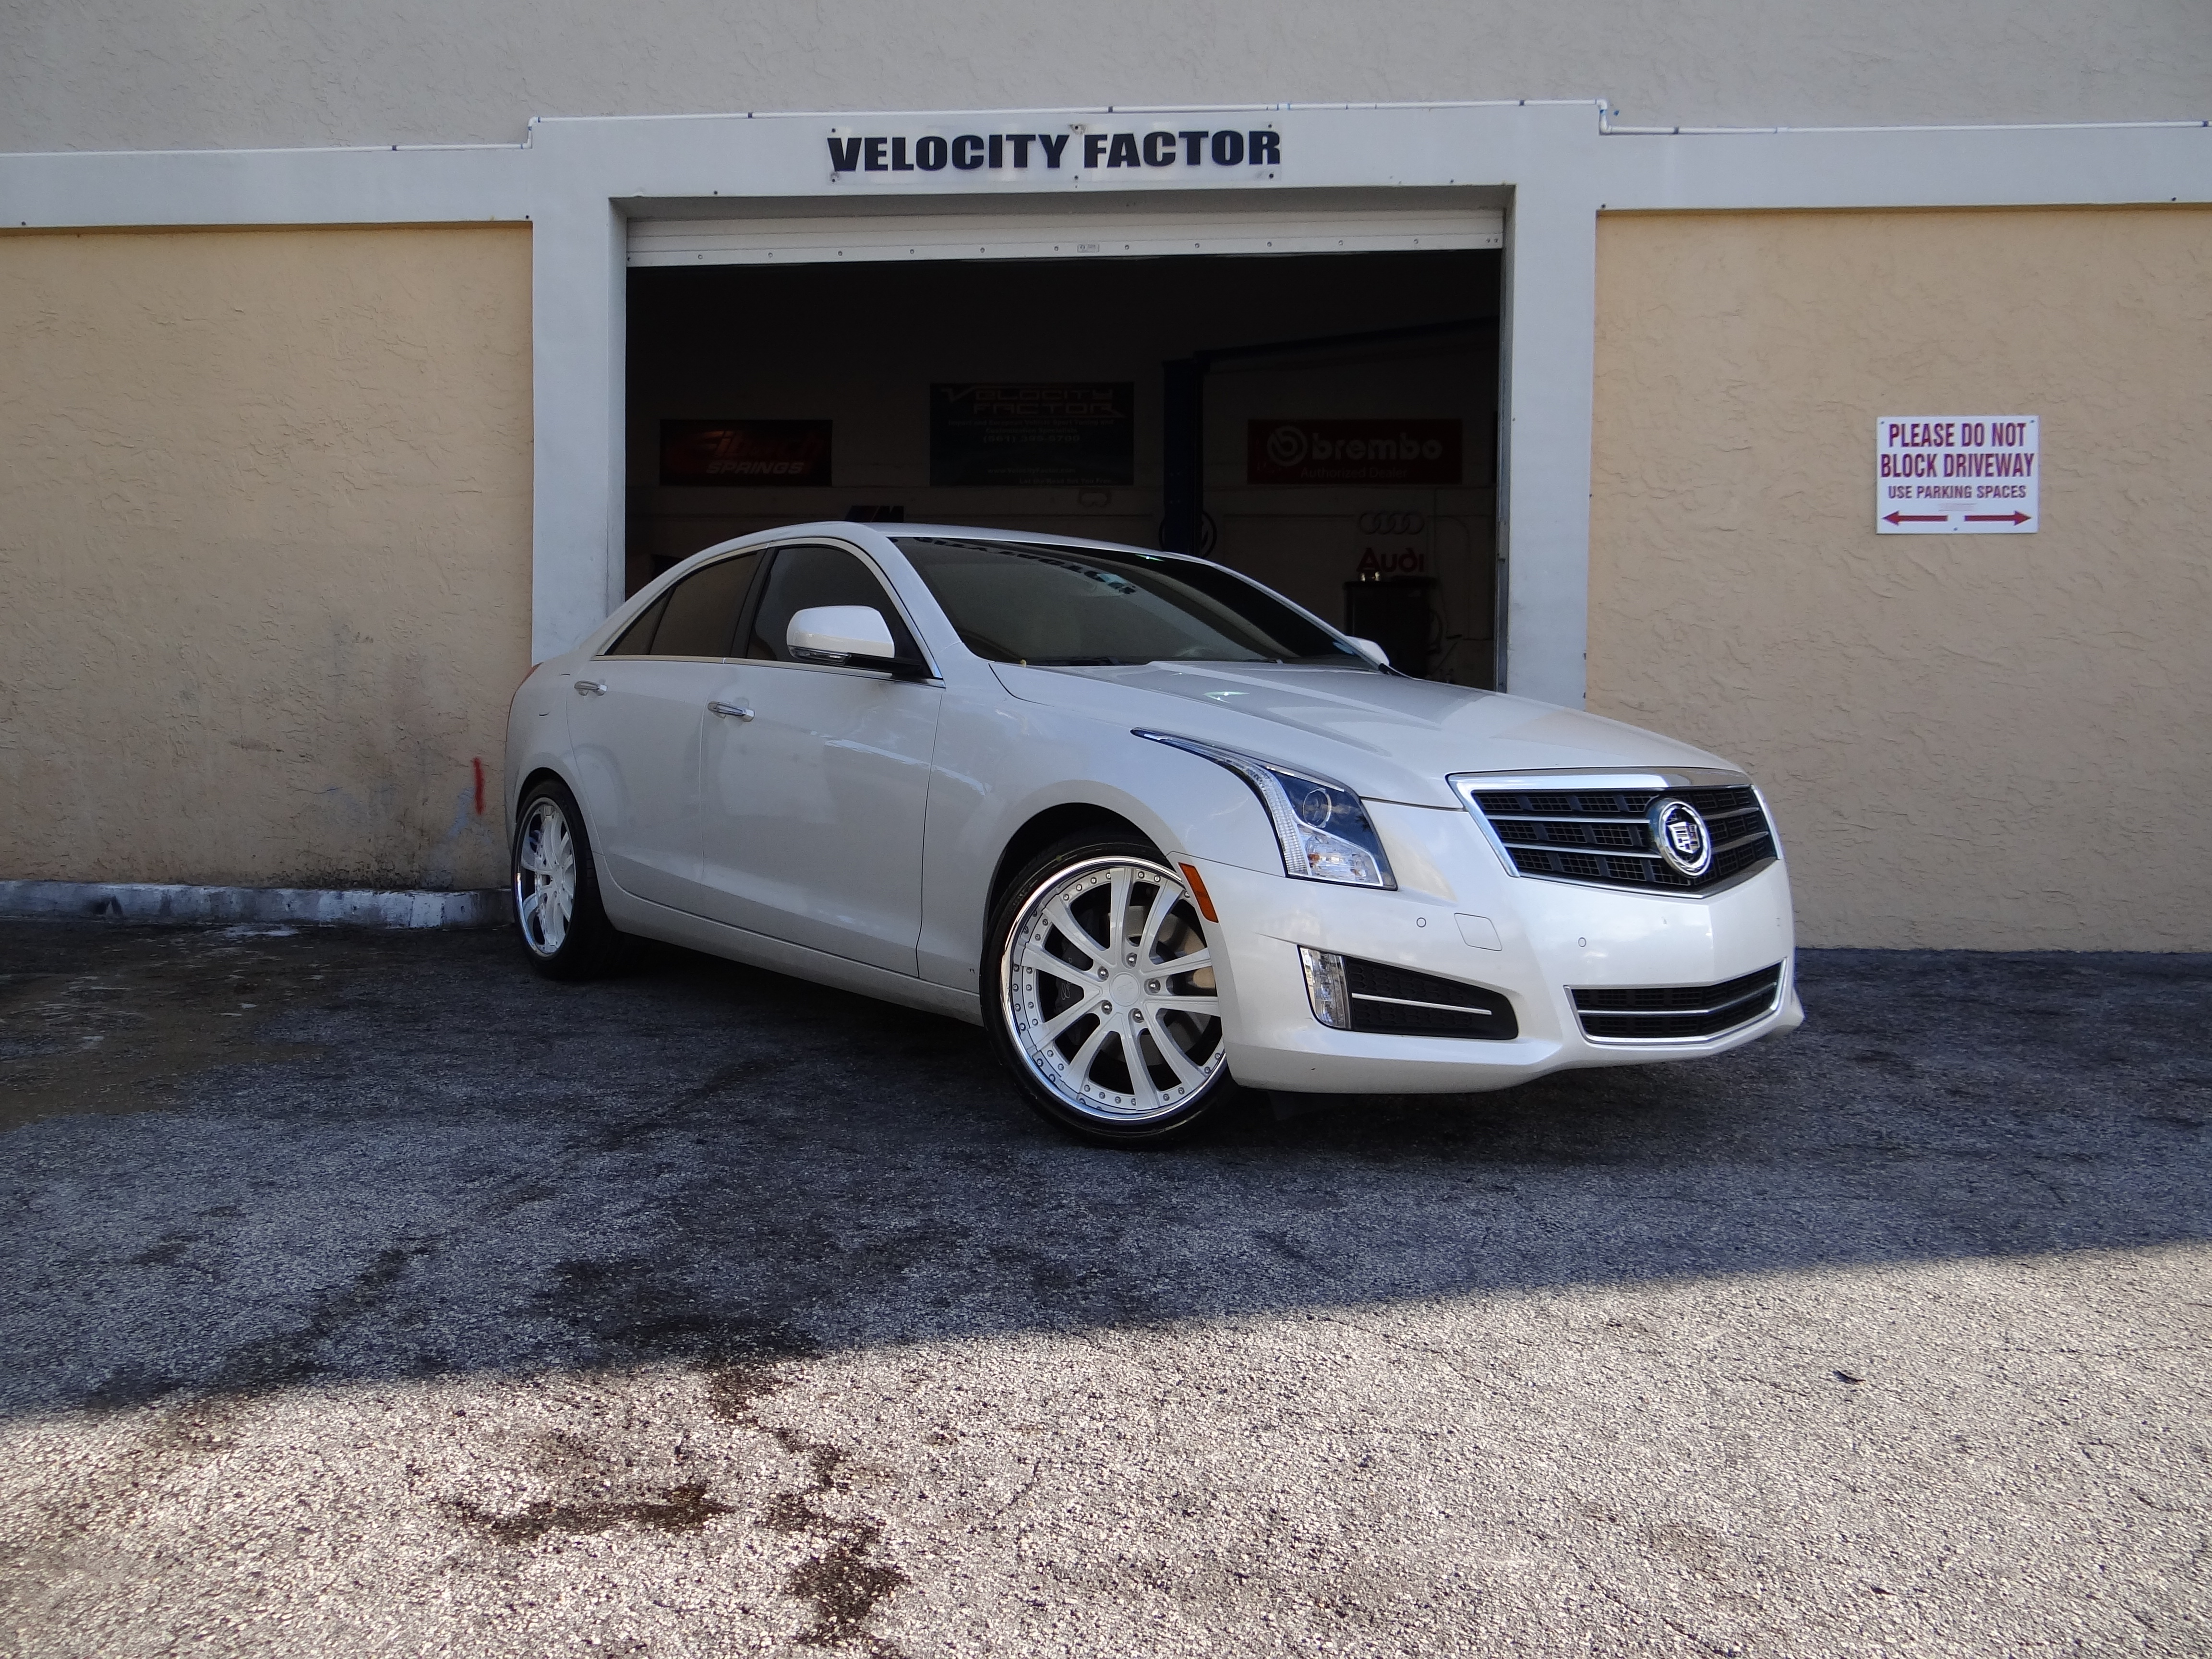 velocity factor cadillac ats vfr auto blog. Black Bedroom Furniture Sets. Home Design Ideas